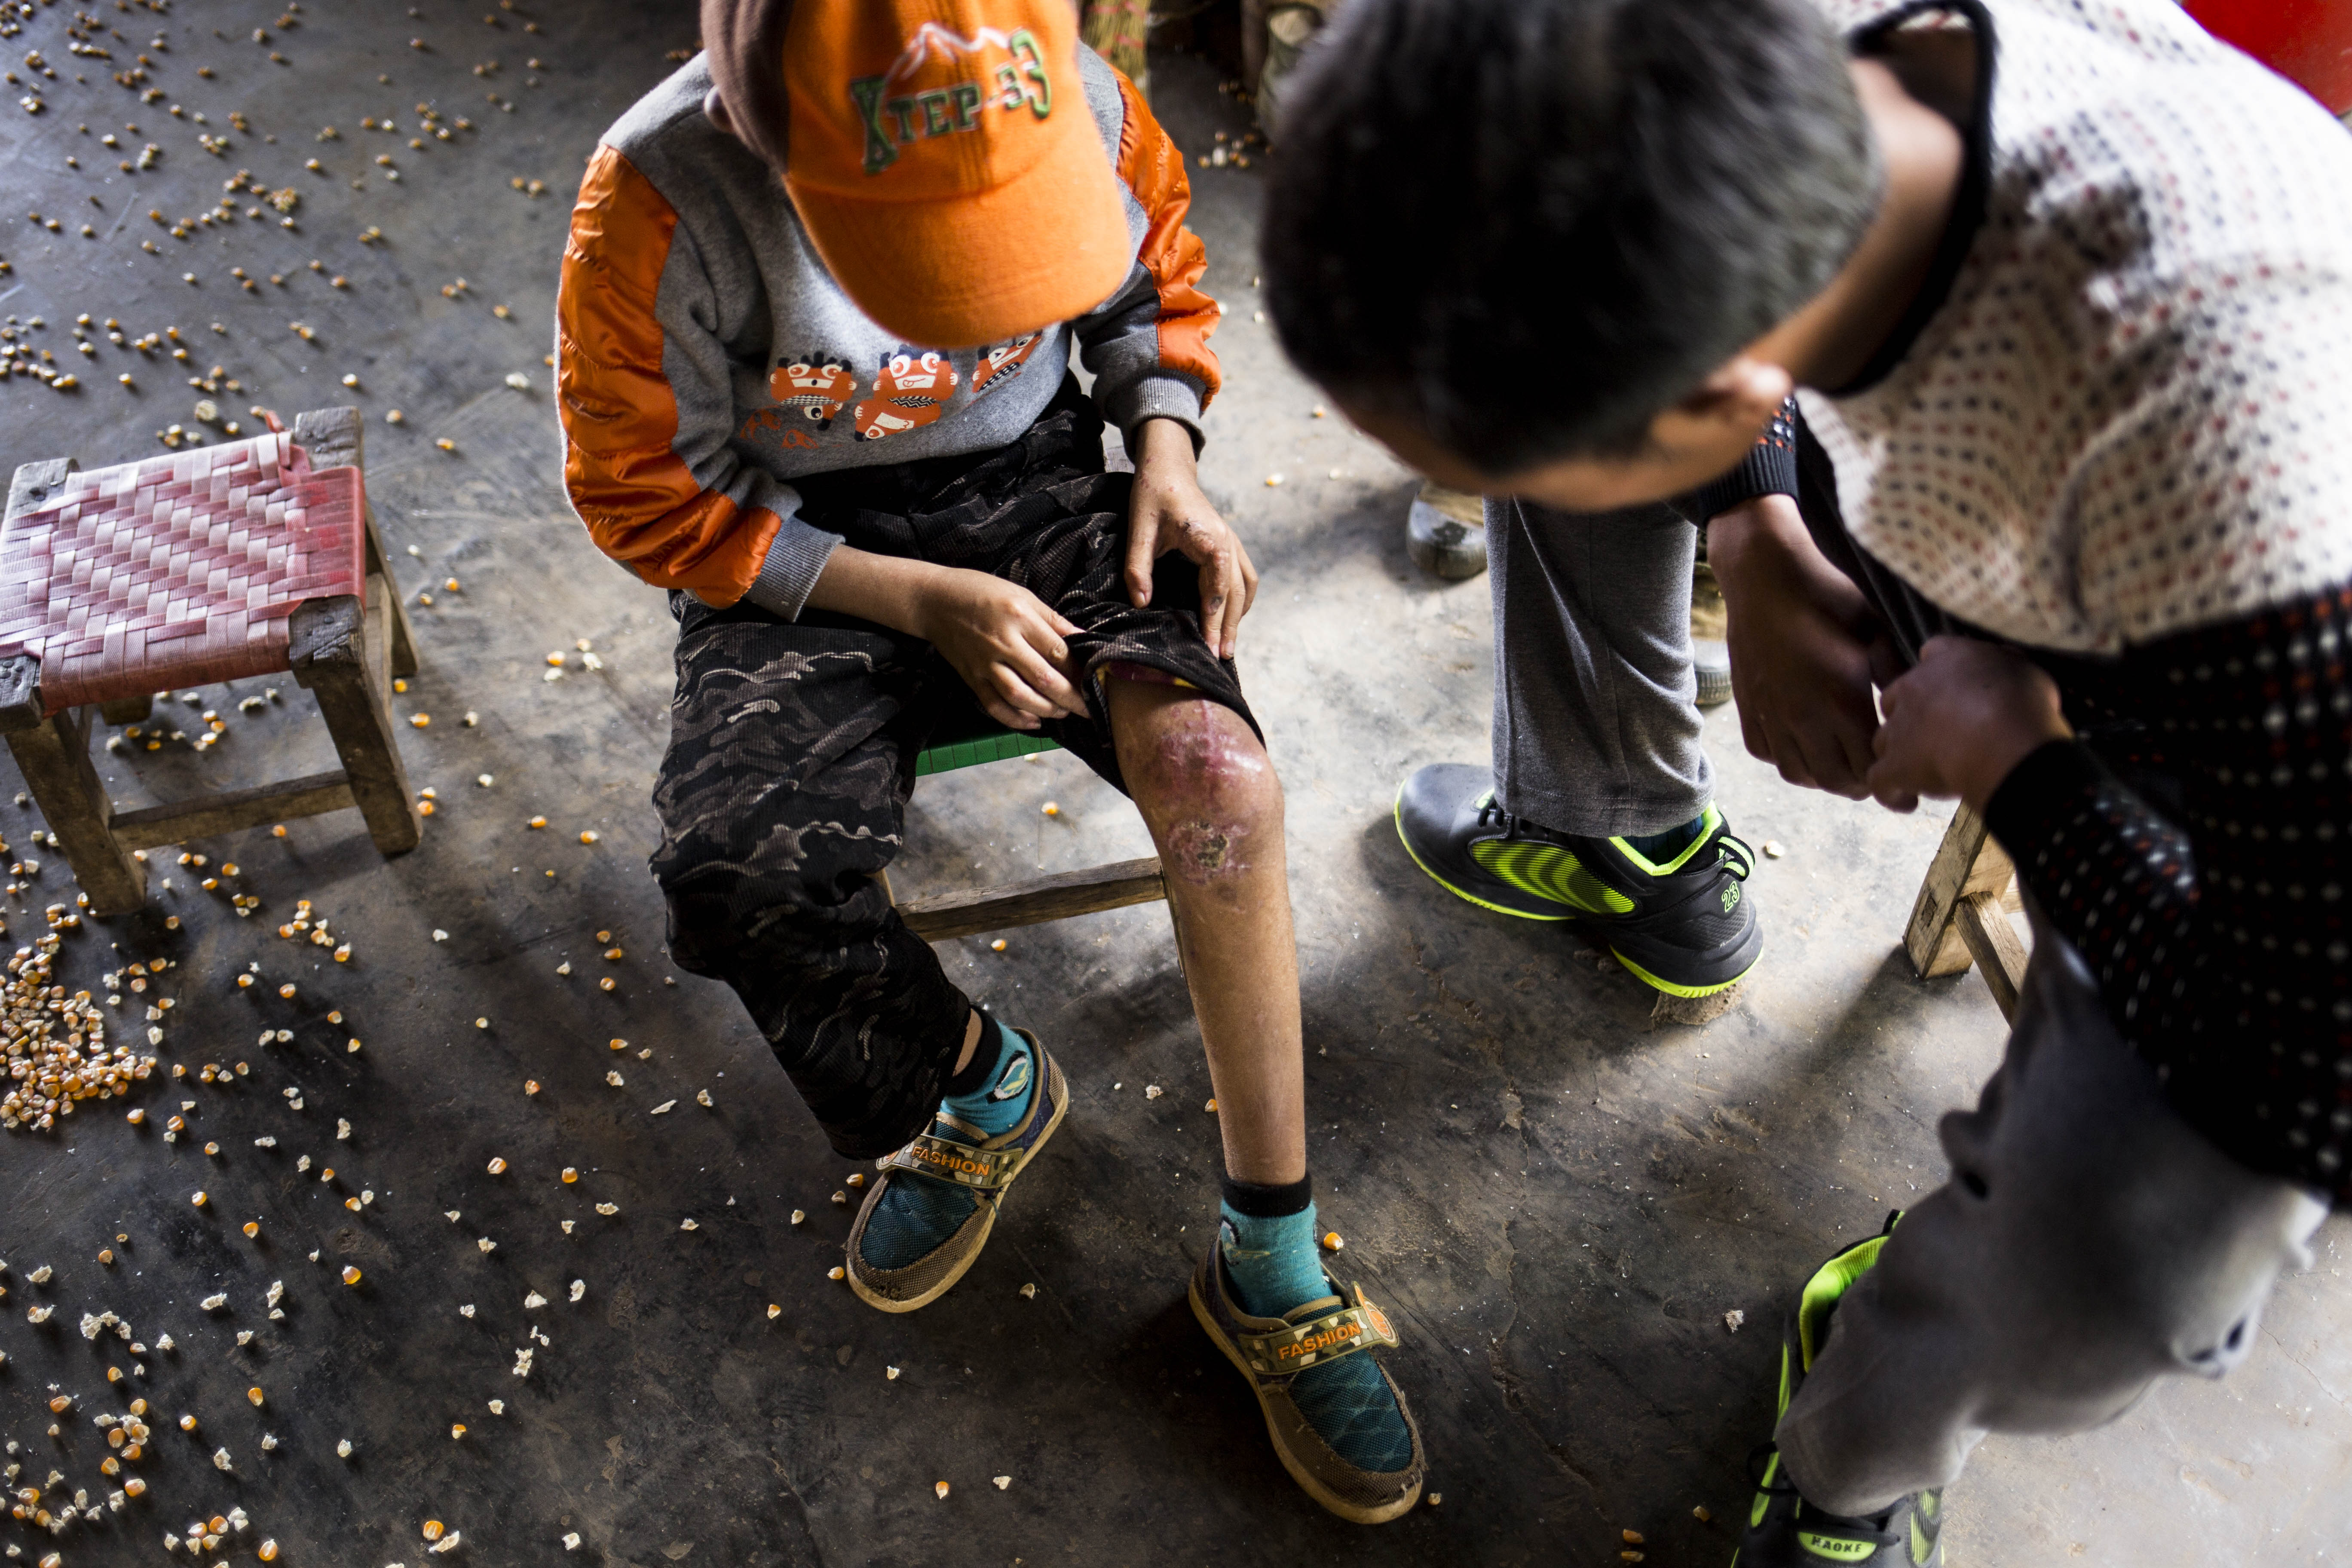 Luo Ben Qing, 10, is shown in November 2015 displaying injuries he received in a landmine explosion in Myanmar's Shan State